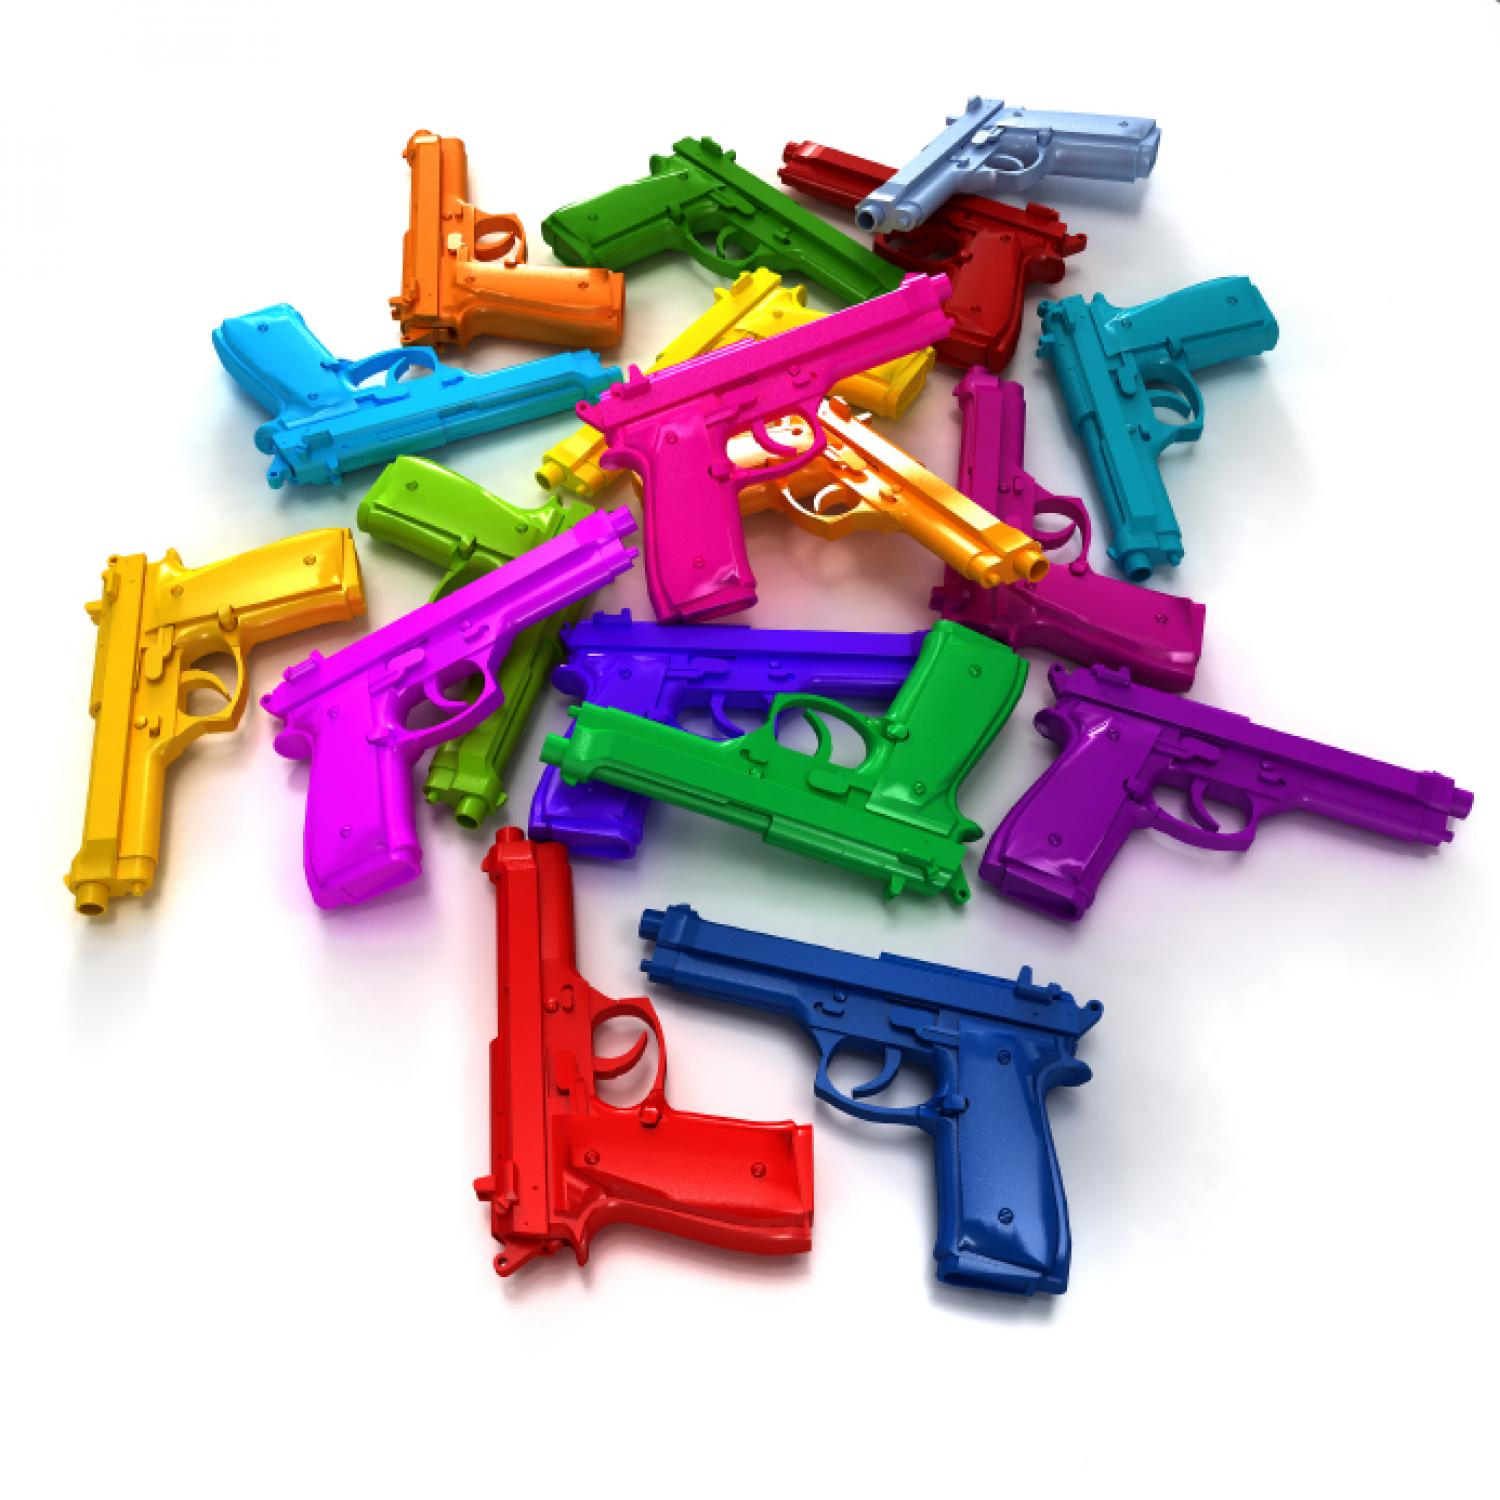 Should Toy Guns Be Banned